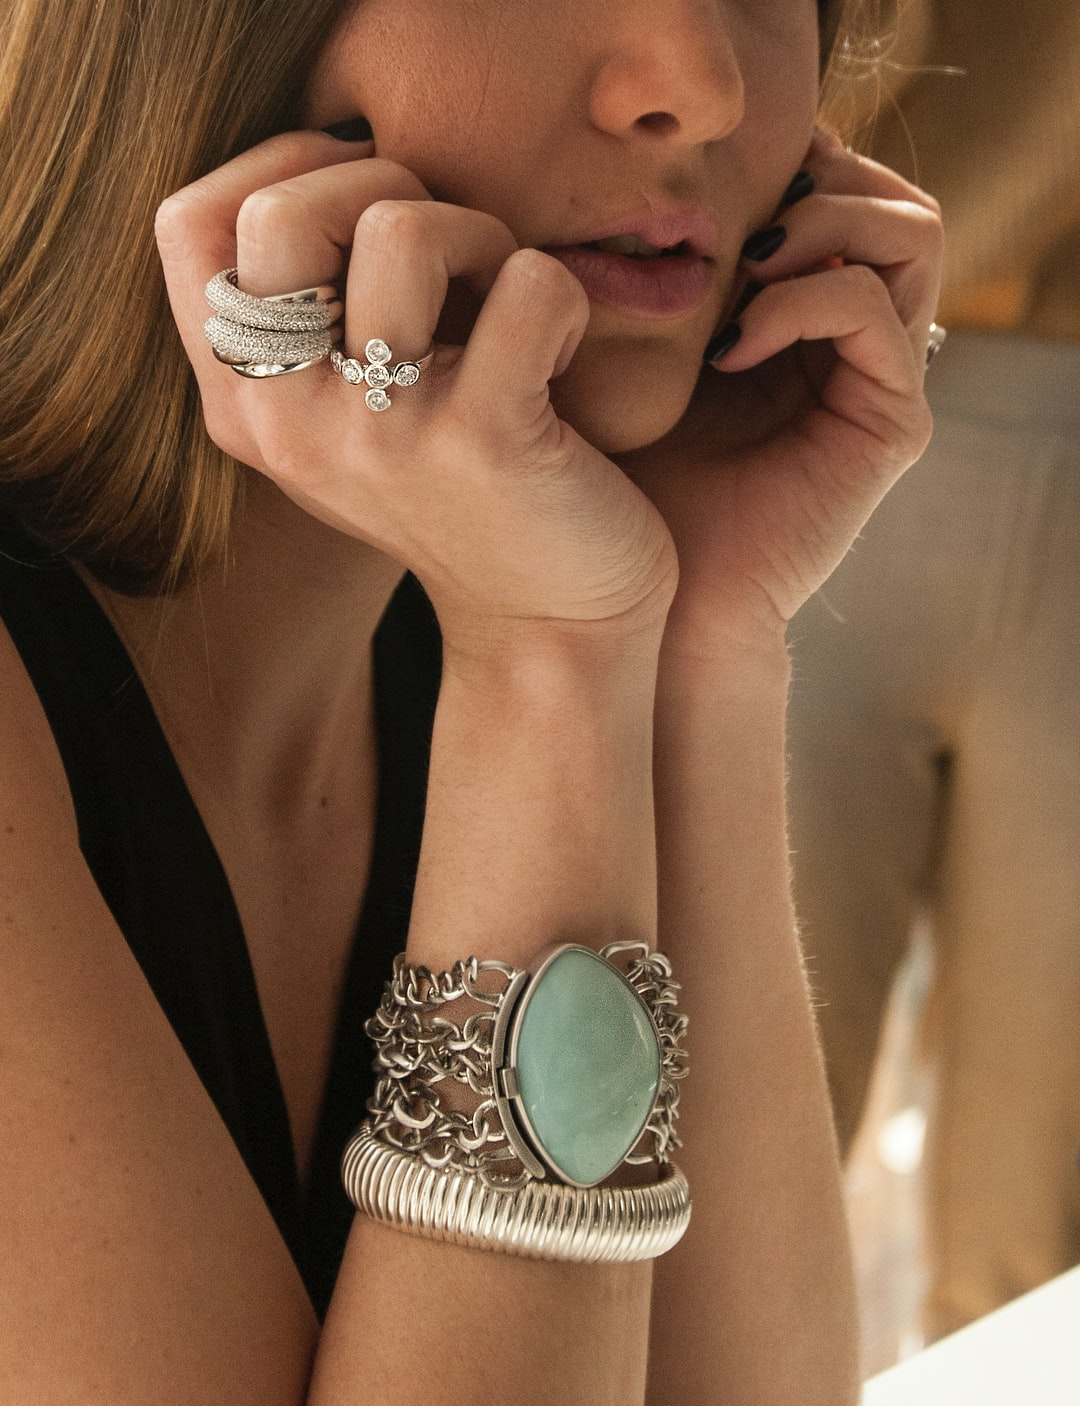 How to Perfectly Accessorize With Jewelry